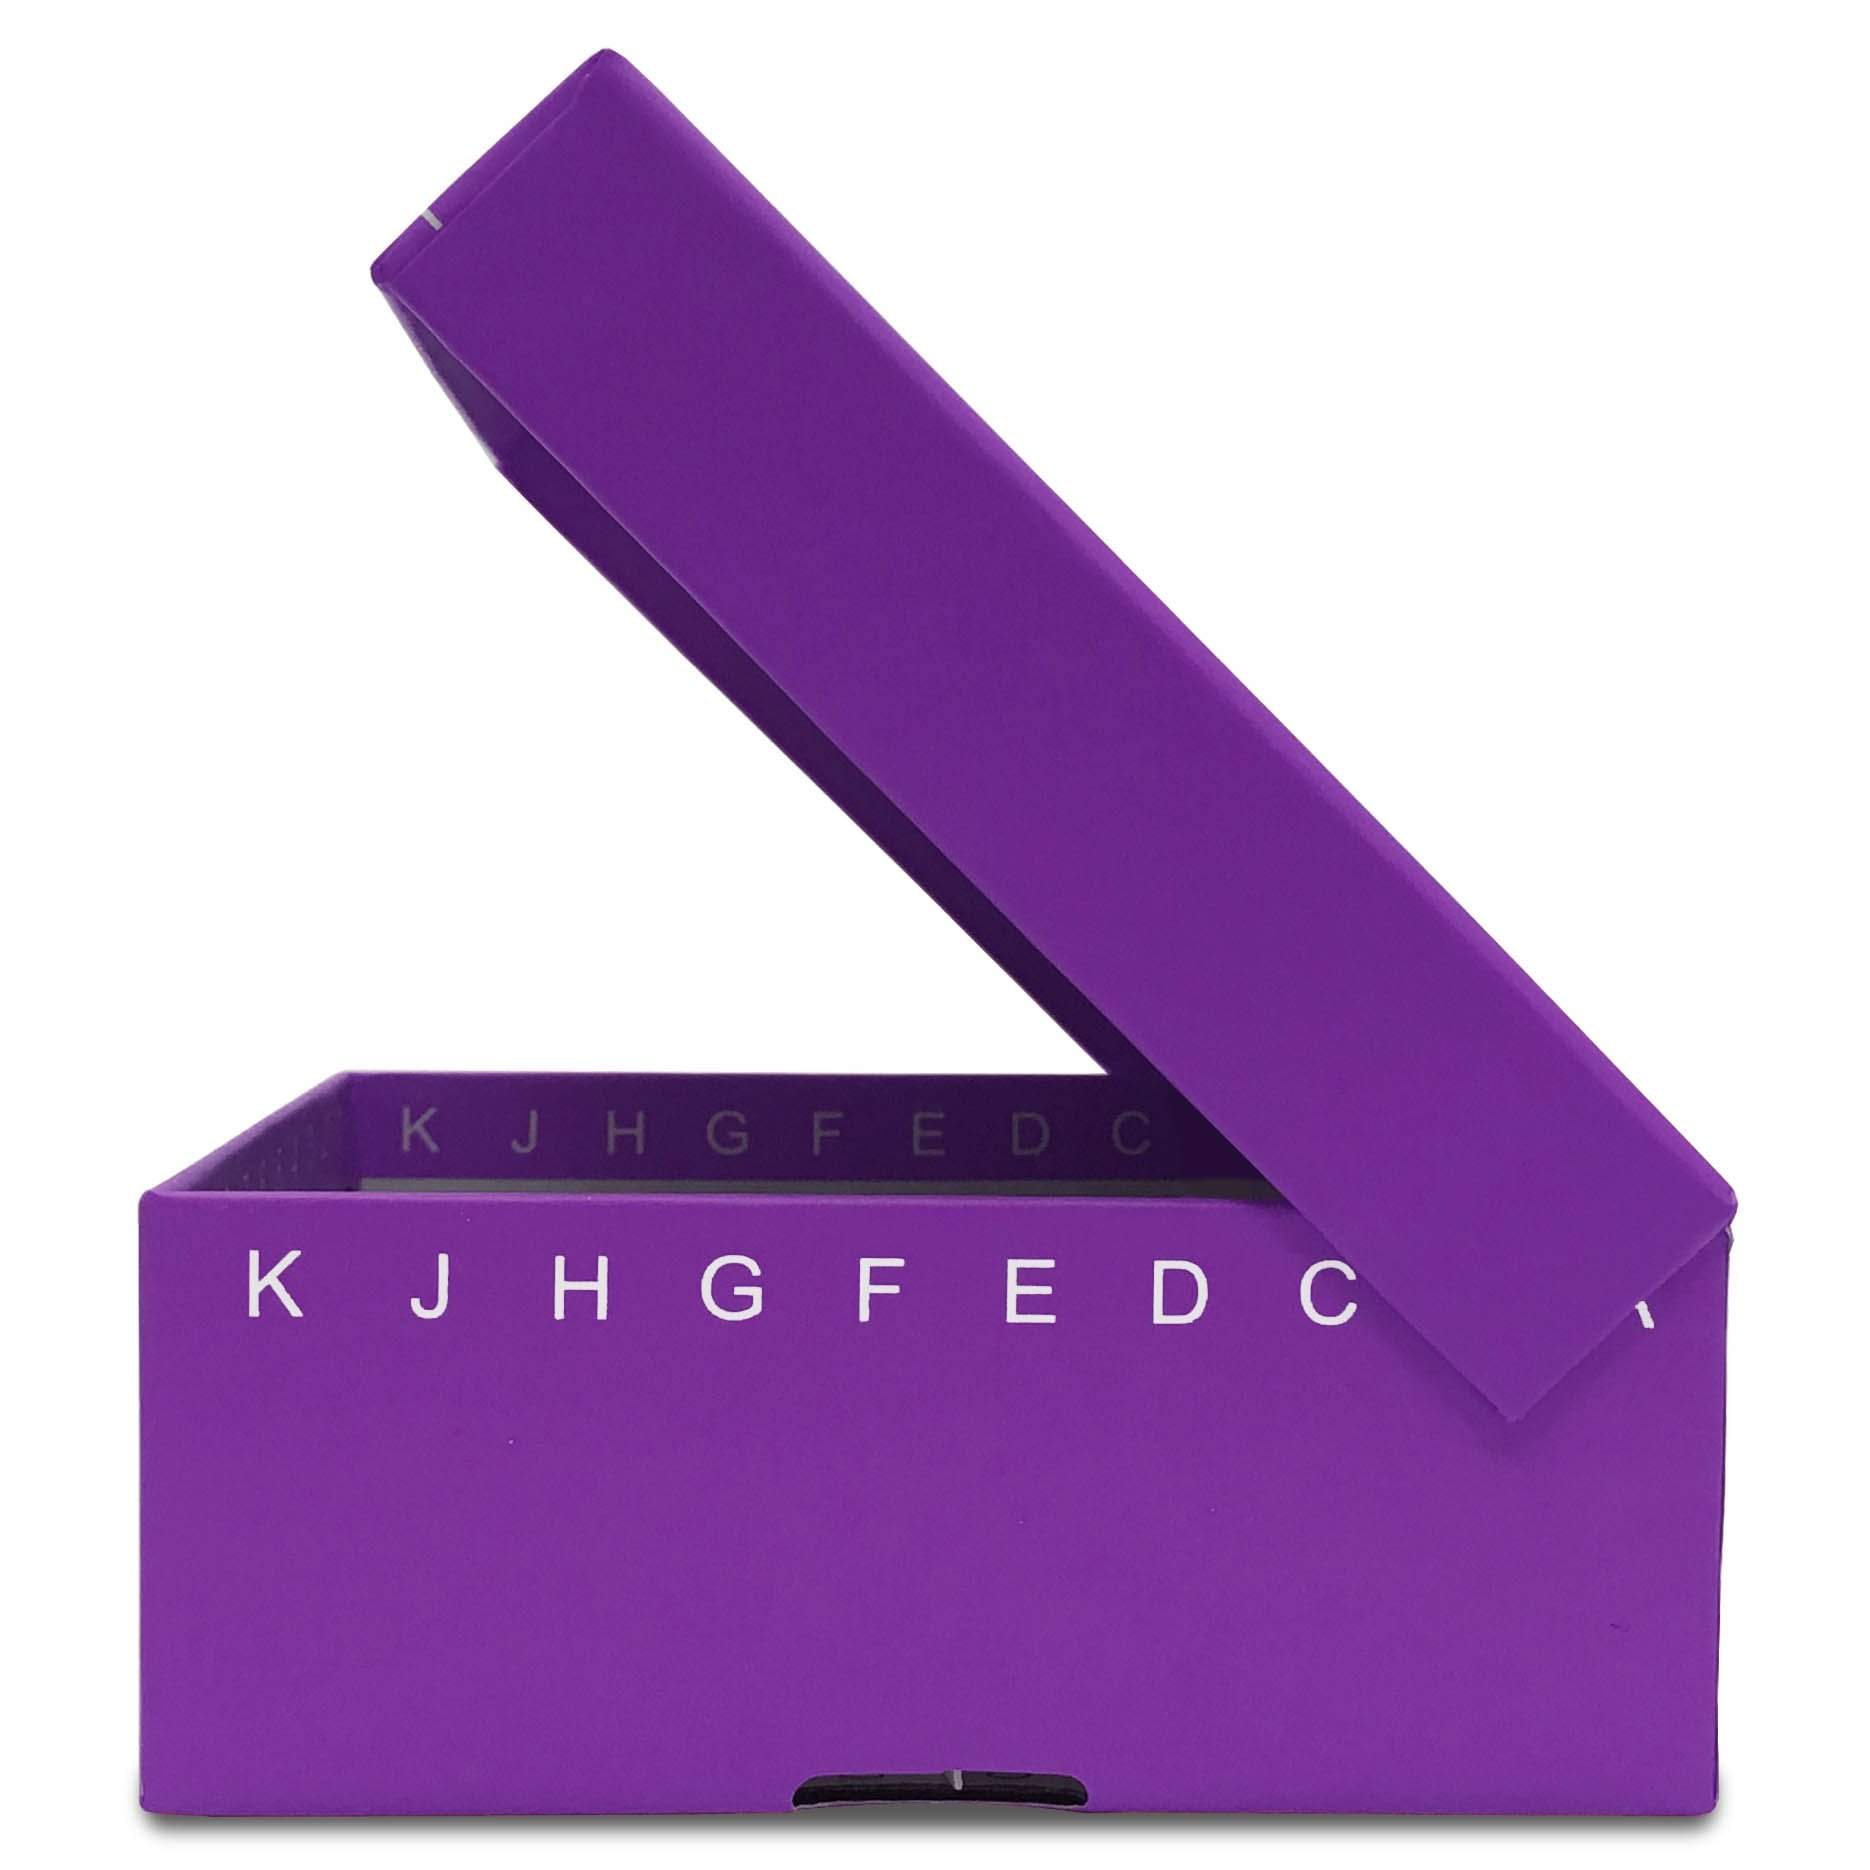 FlipTop Cardboard Freezer Box 100-Place with Attached Hinged Lid - Purple (Case of 50)